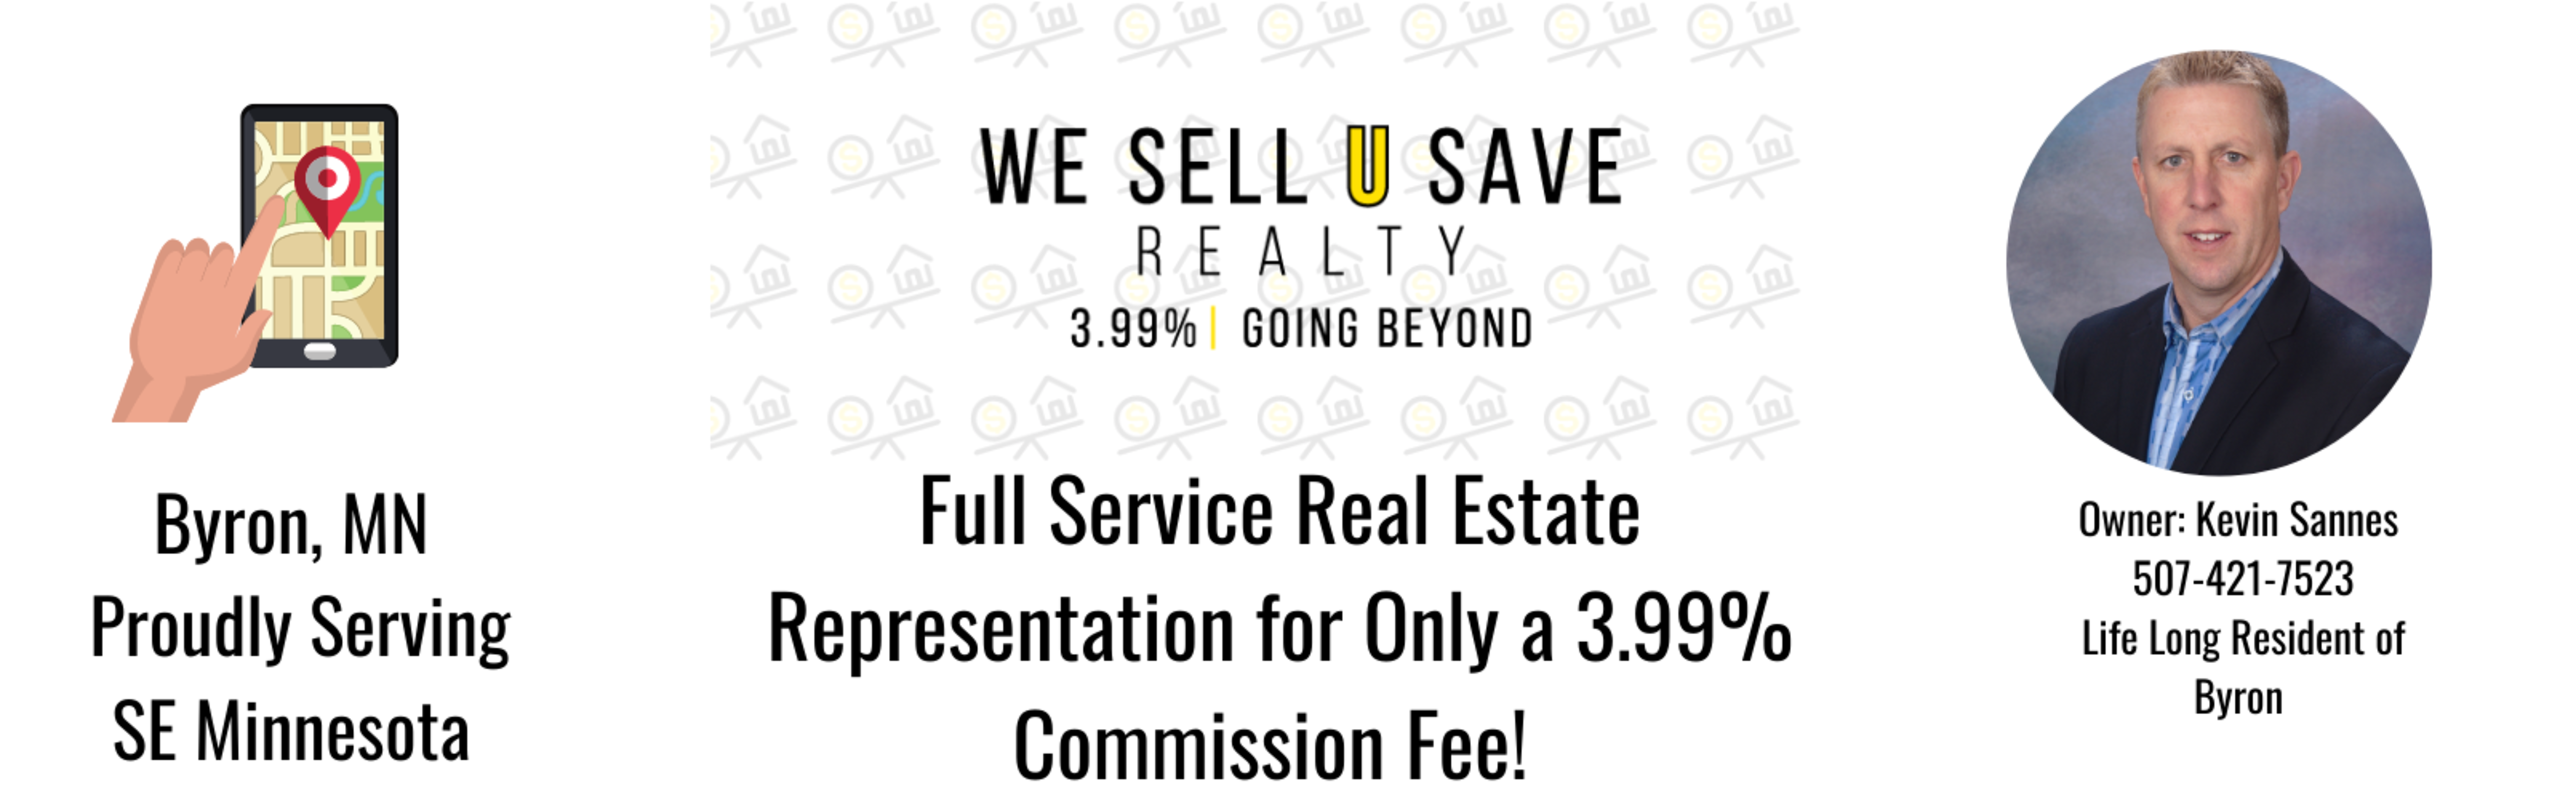 We Sell U Save Realty | Proudly Serving Southeast Minnesota